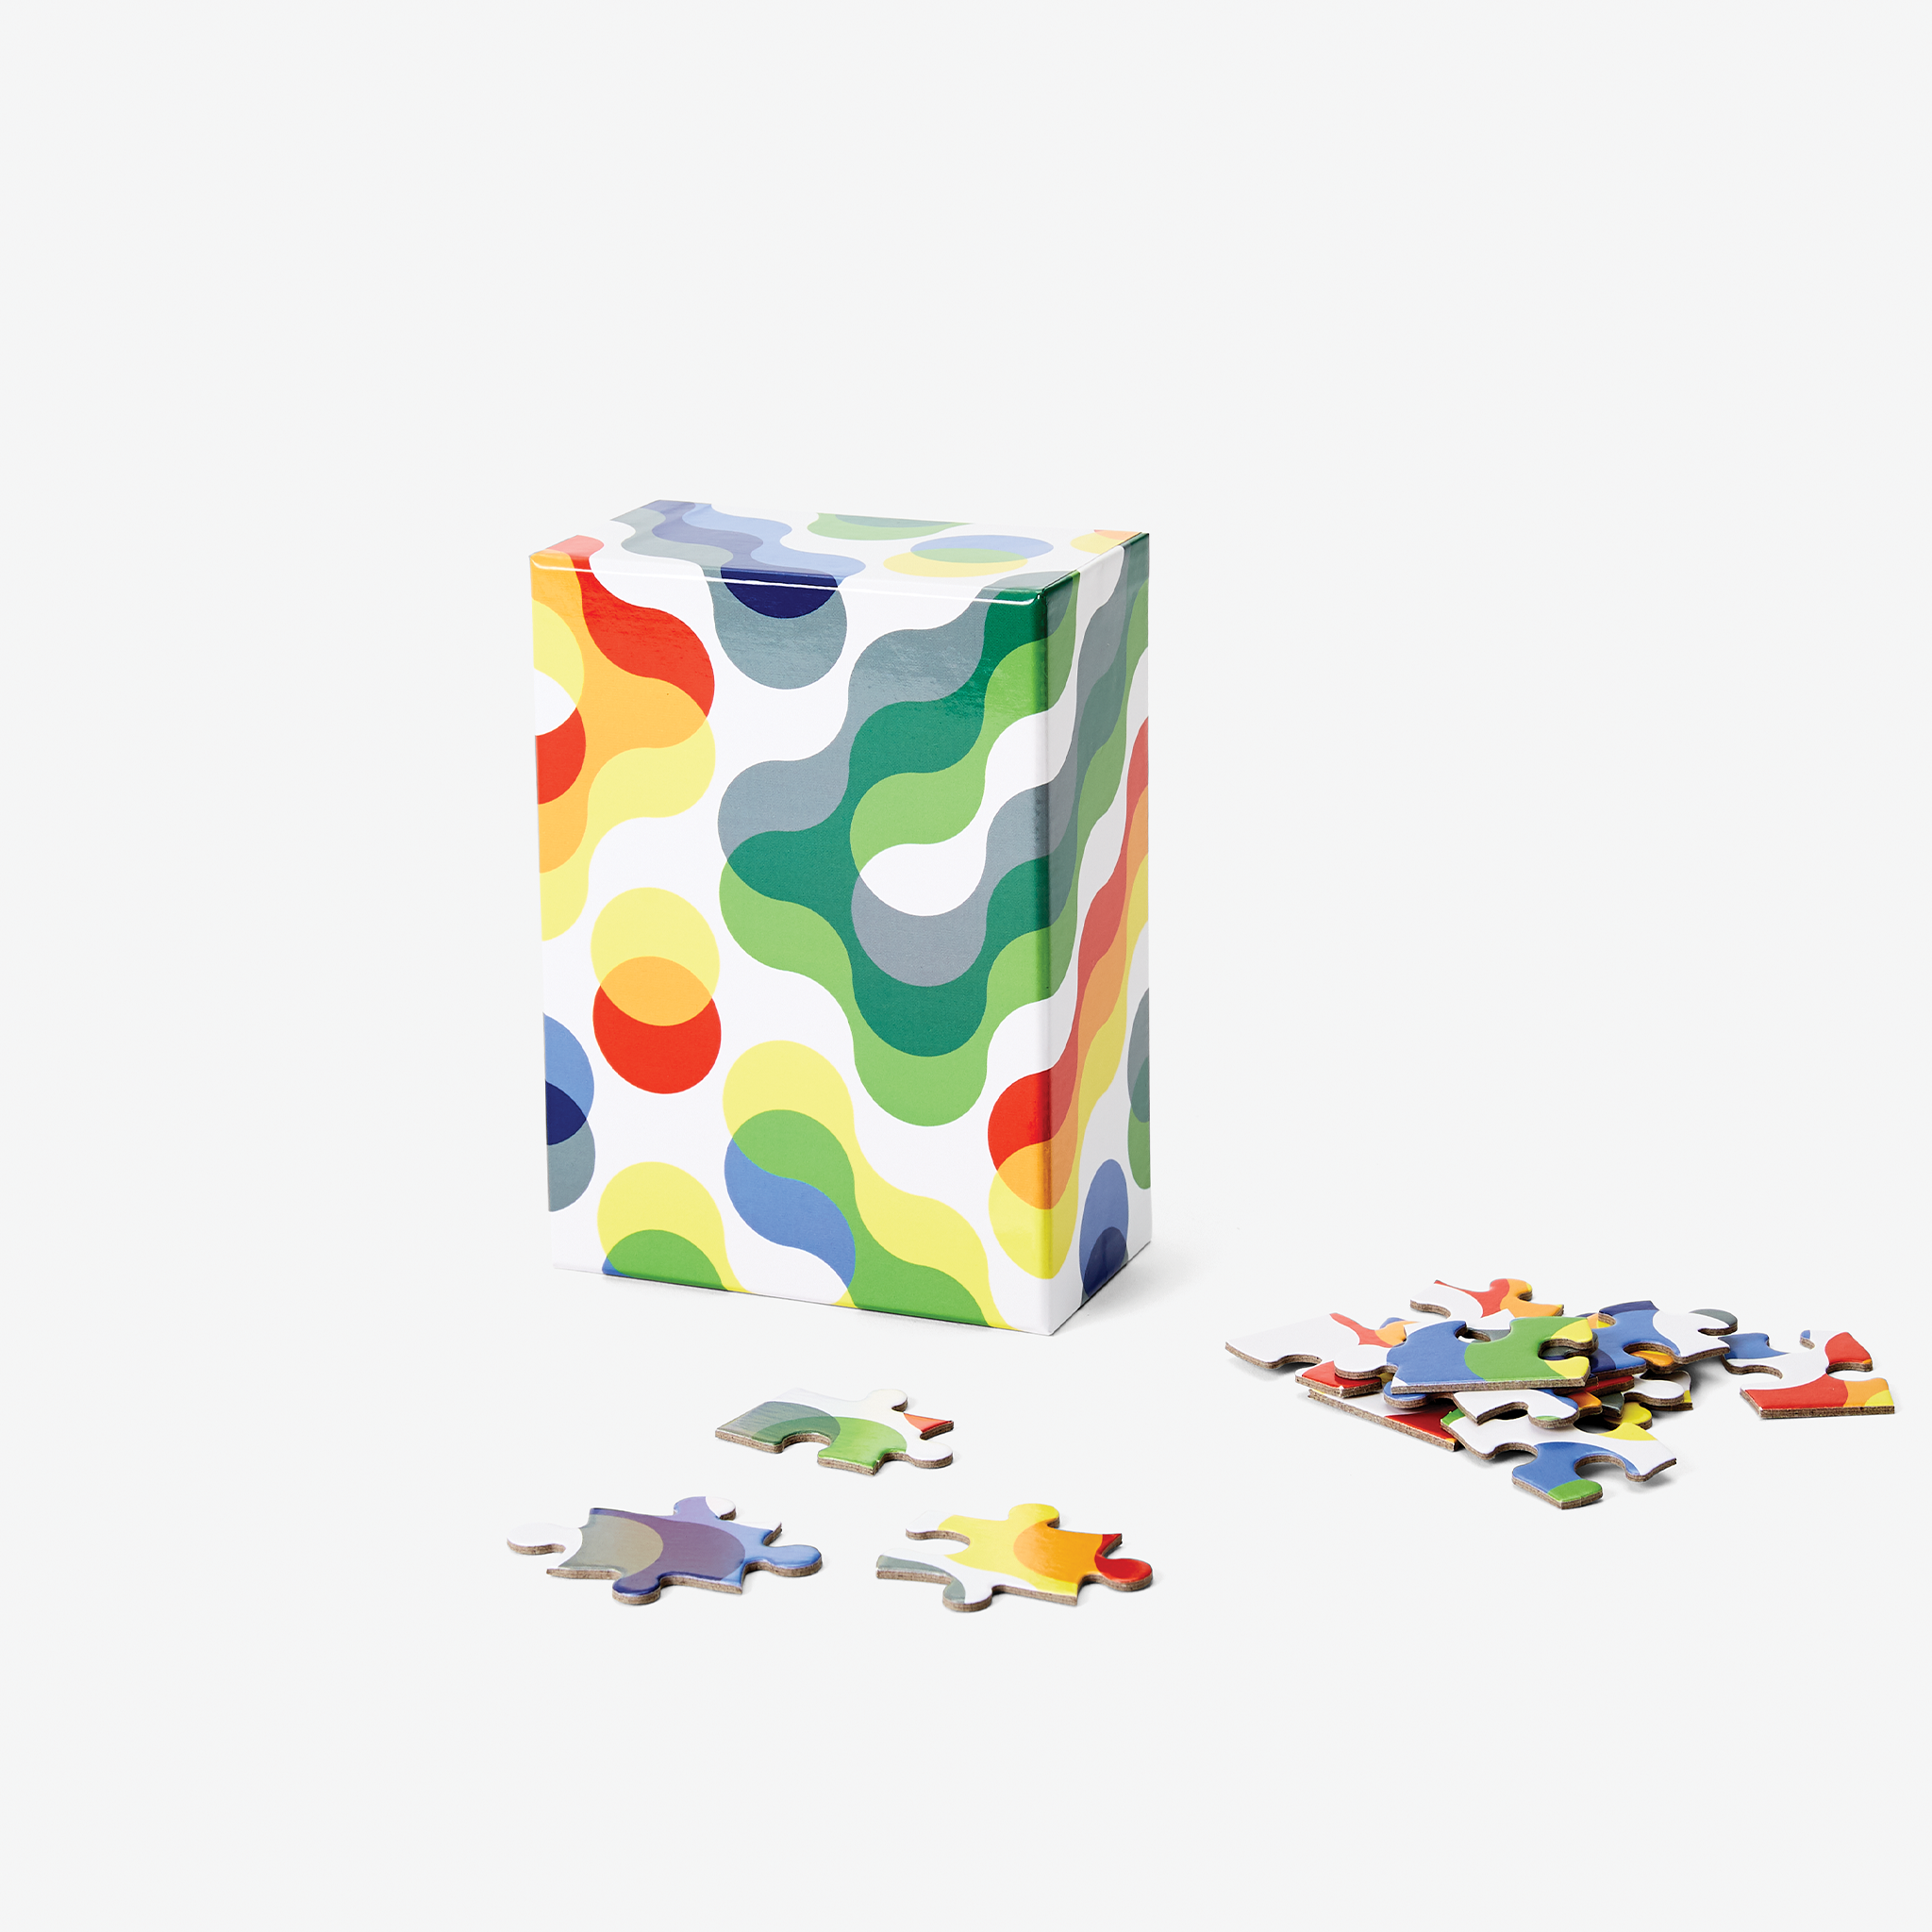 Arc Pattern Puzzle, Small by Dusen Dusen for Areaware